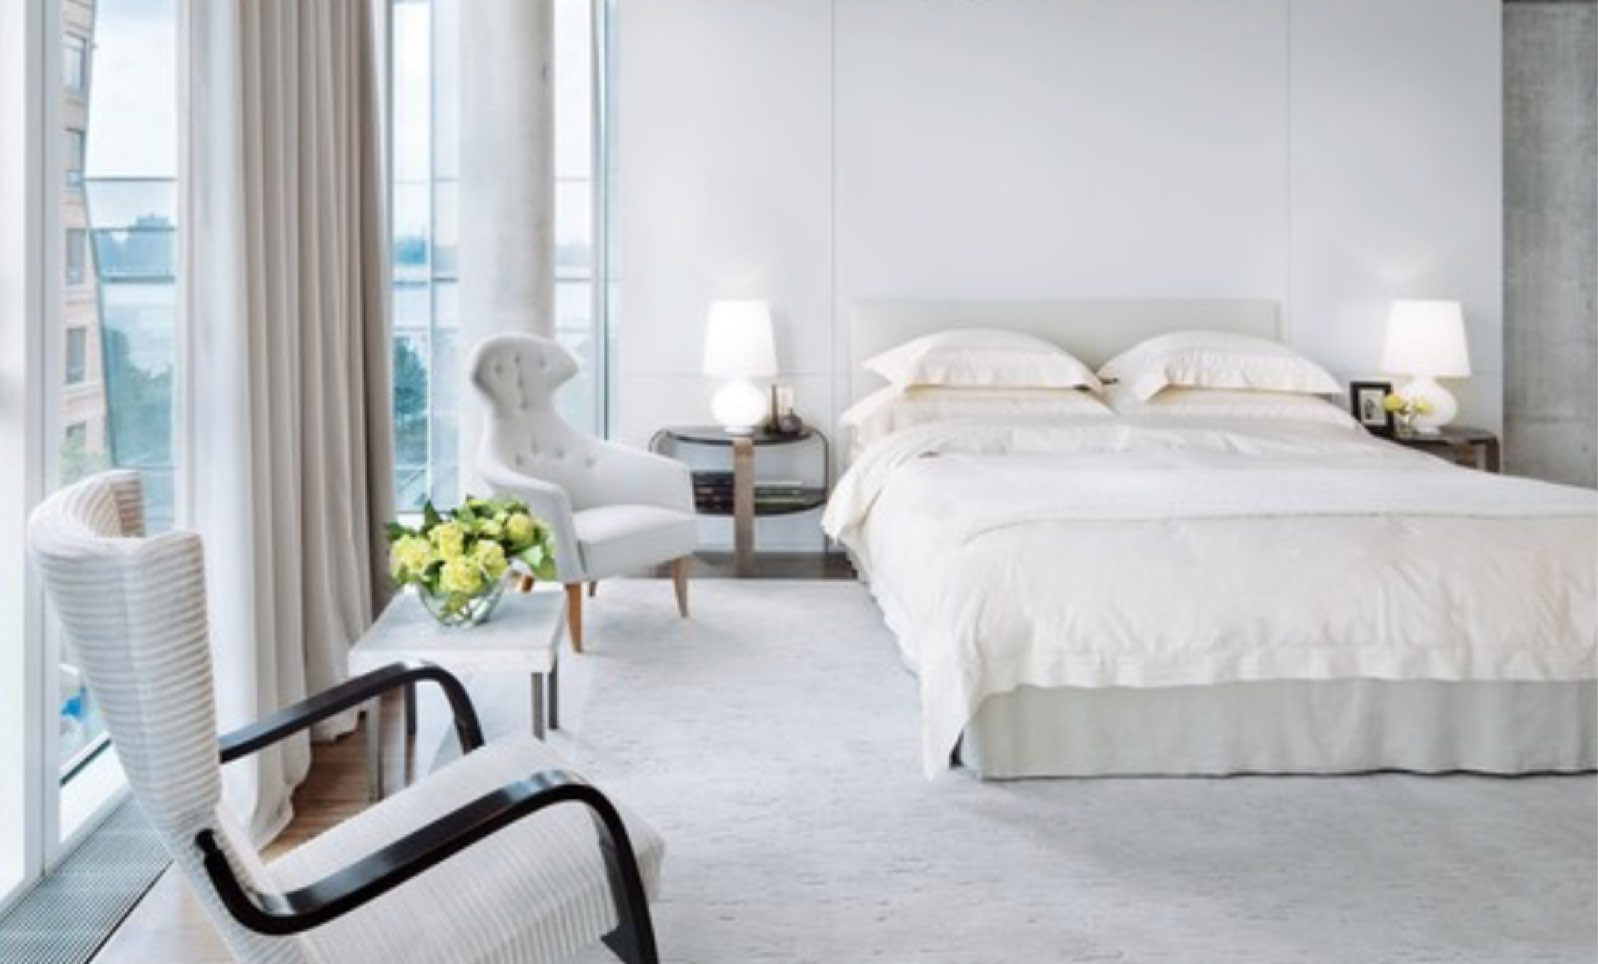 The Minimalist Bedrooms of Your Dreams Photos | Architectural Digest.jpg